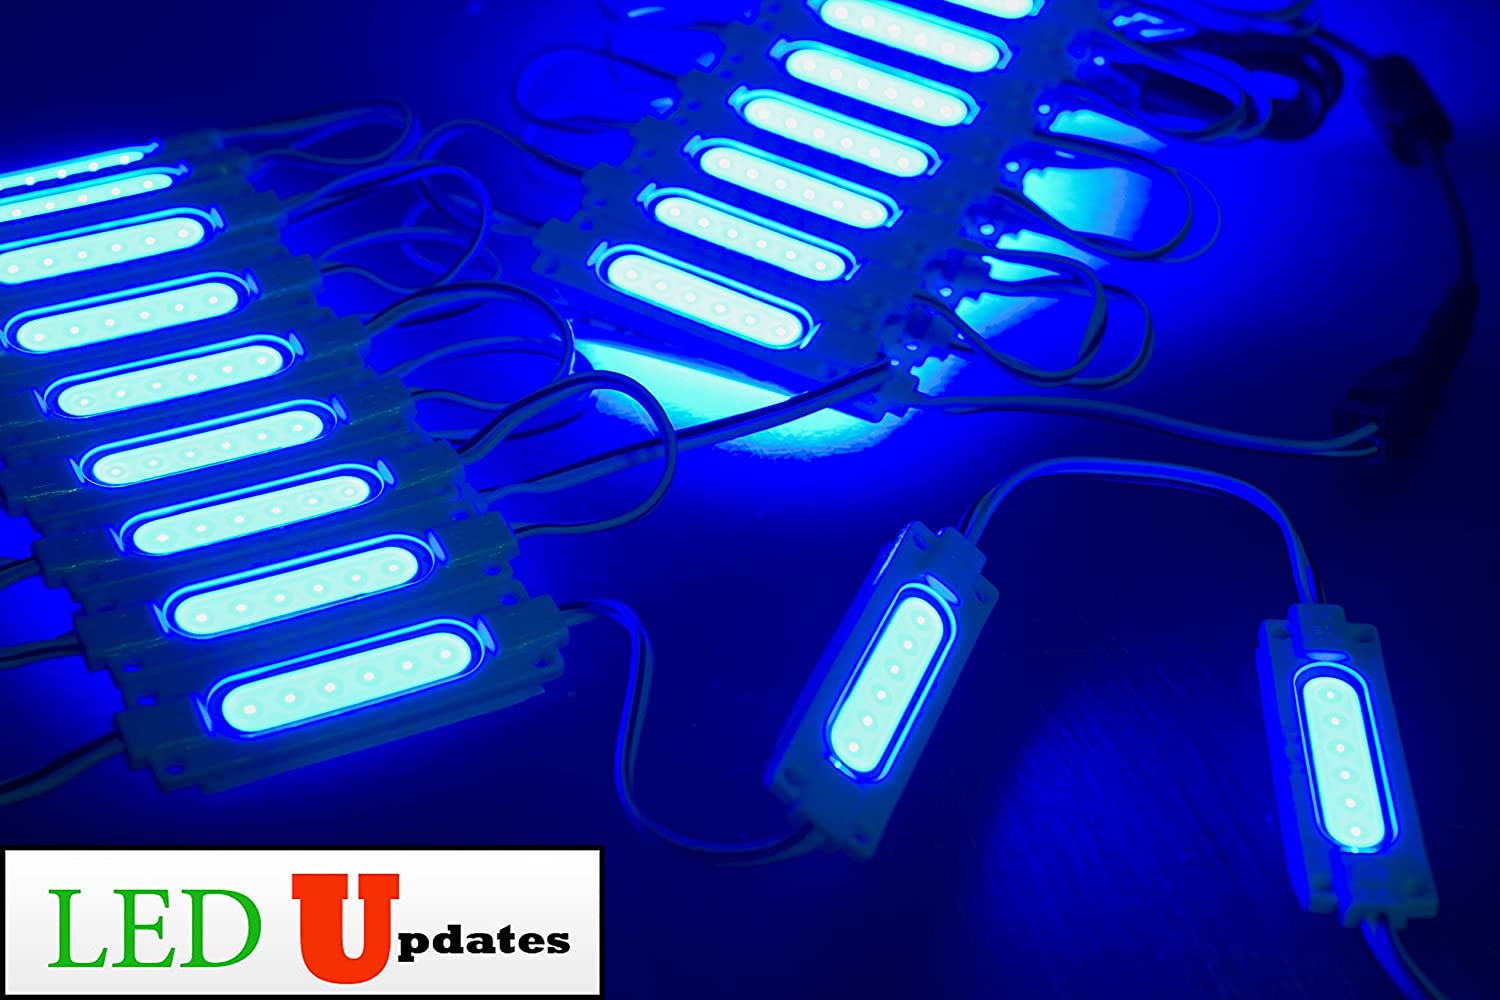 40ft, White LEDUPDATES BRIGHTEST STOREFRONT WINDOW LED LIGHT COB WITH UL POWER SUPPLY BRIGHTER THAN 5050 5630 5730 2835